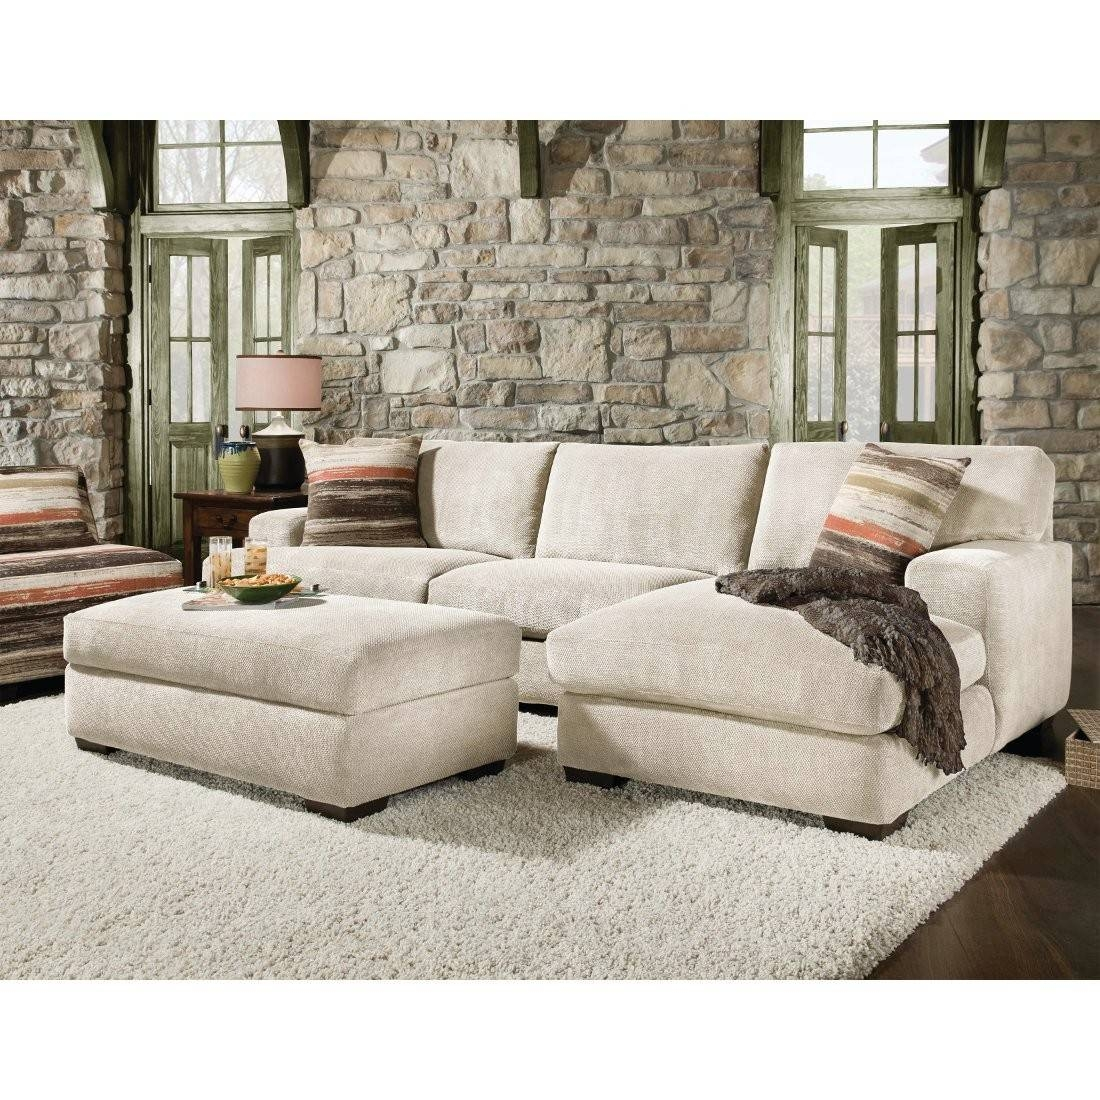 Long Sectional Sofas - Cleanupflorida | Tehranmix Decoration intended for Long Sectional Sofa With Chaise (Image 21 of 30)